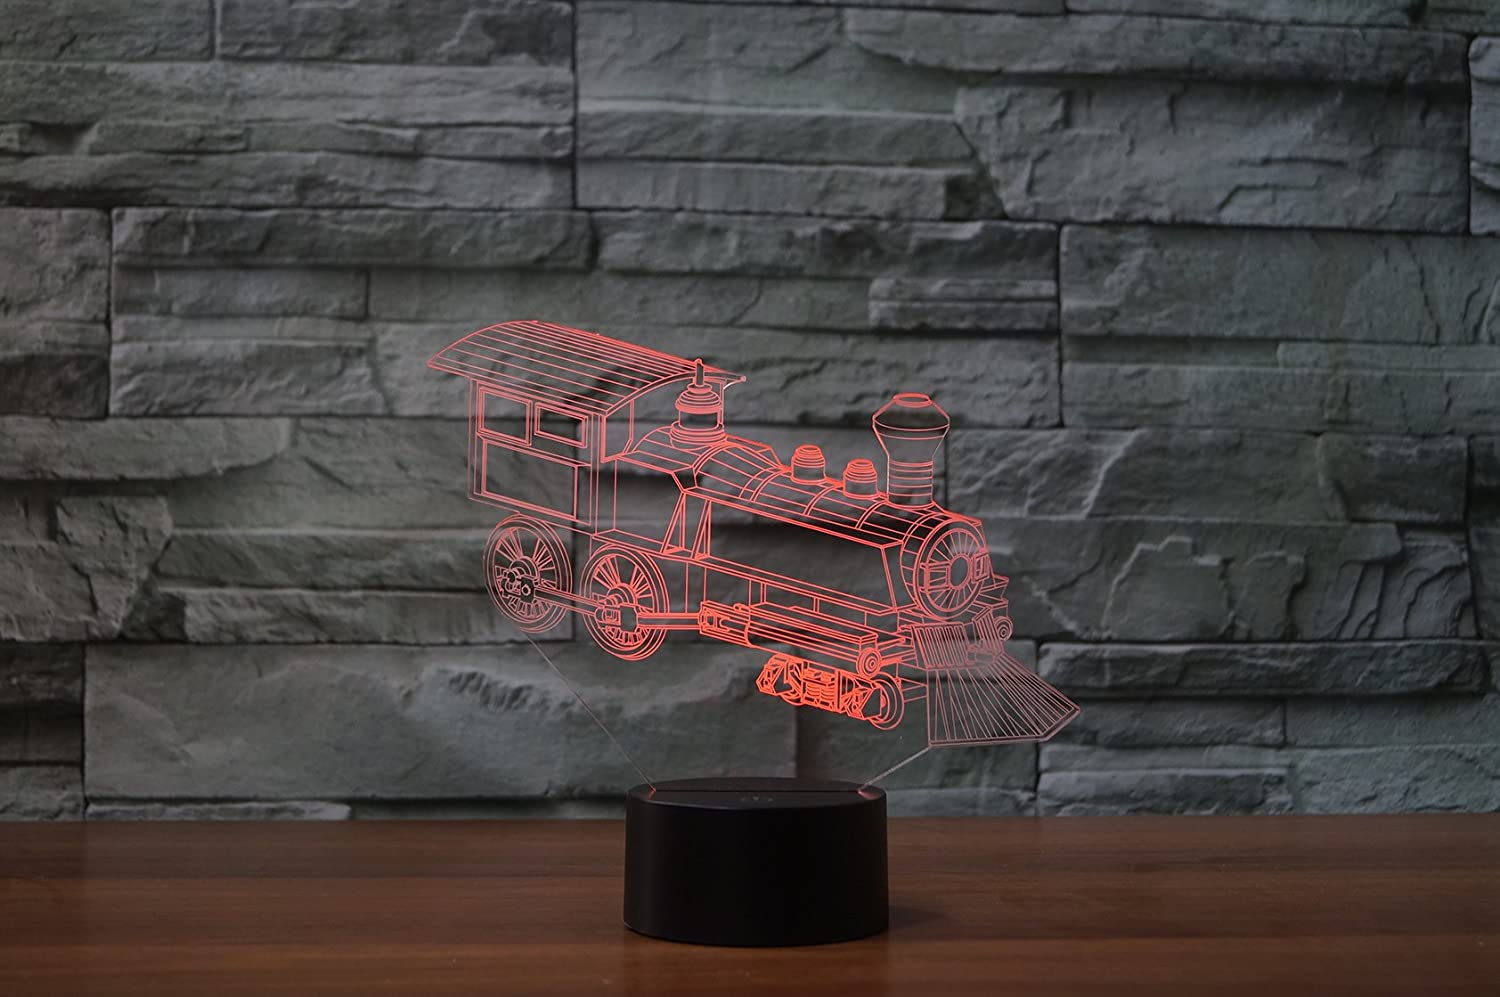 7 Color Changing Touch Table Desk 3D Deco Light for Bedroom Children Room Festival USB Powered Decorative Night Light Sports car 3D Illusion Led Lamp